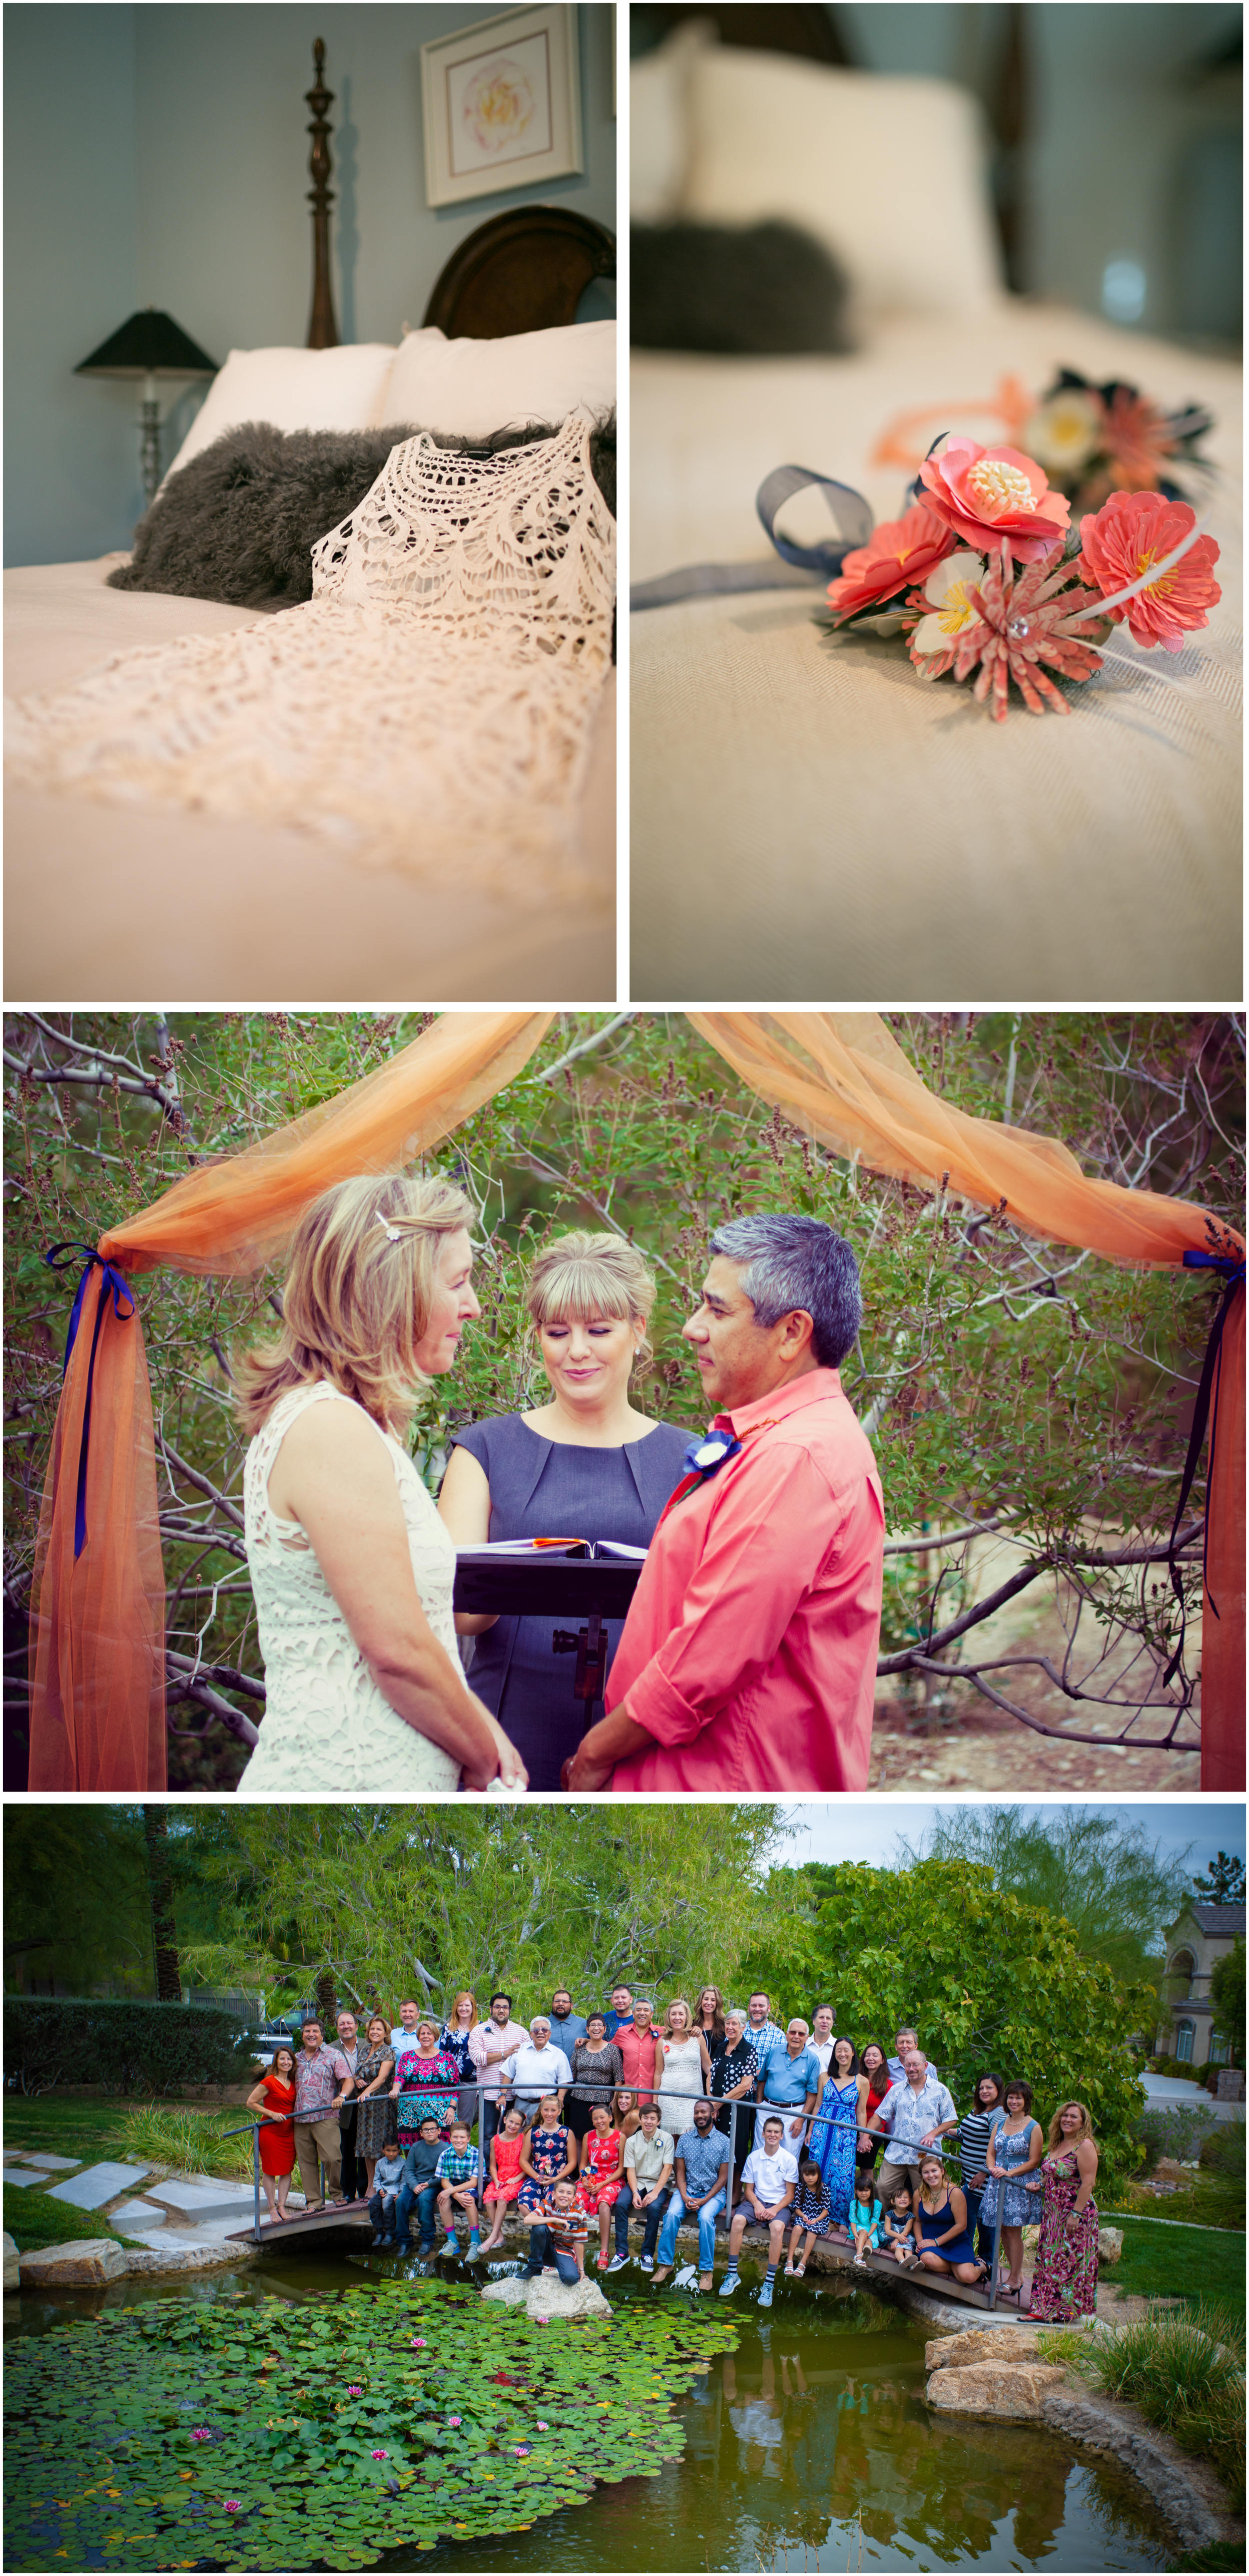 Angie Kelly, the wedding officiant, created and performed a very personalized ceremony. It was touching and elegant, reflecting Pam's and Jerry's individuality.